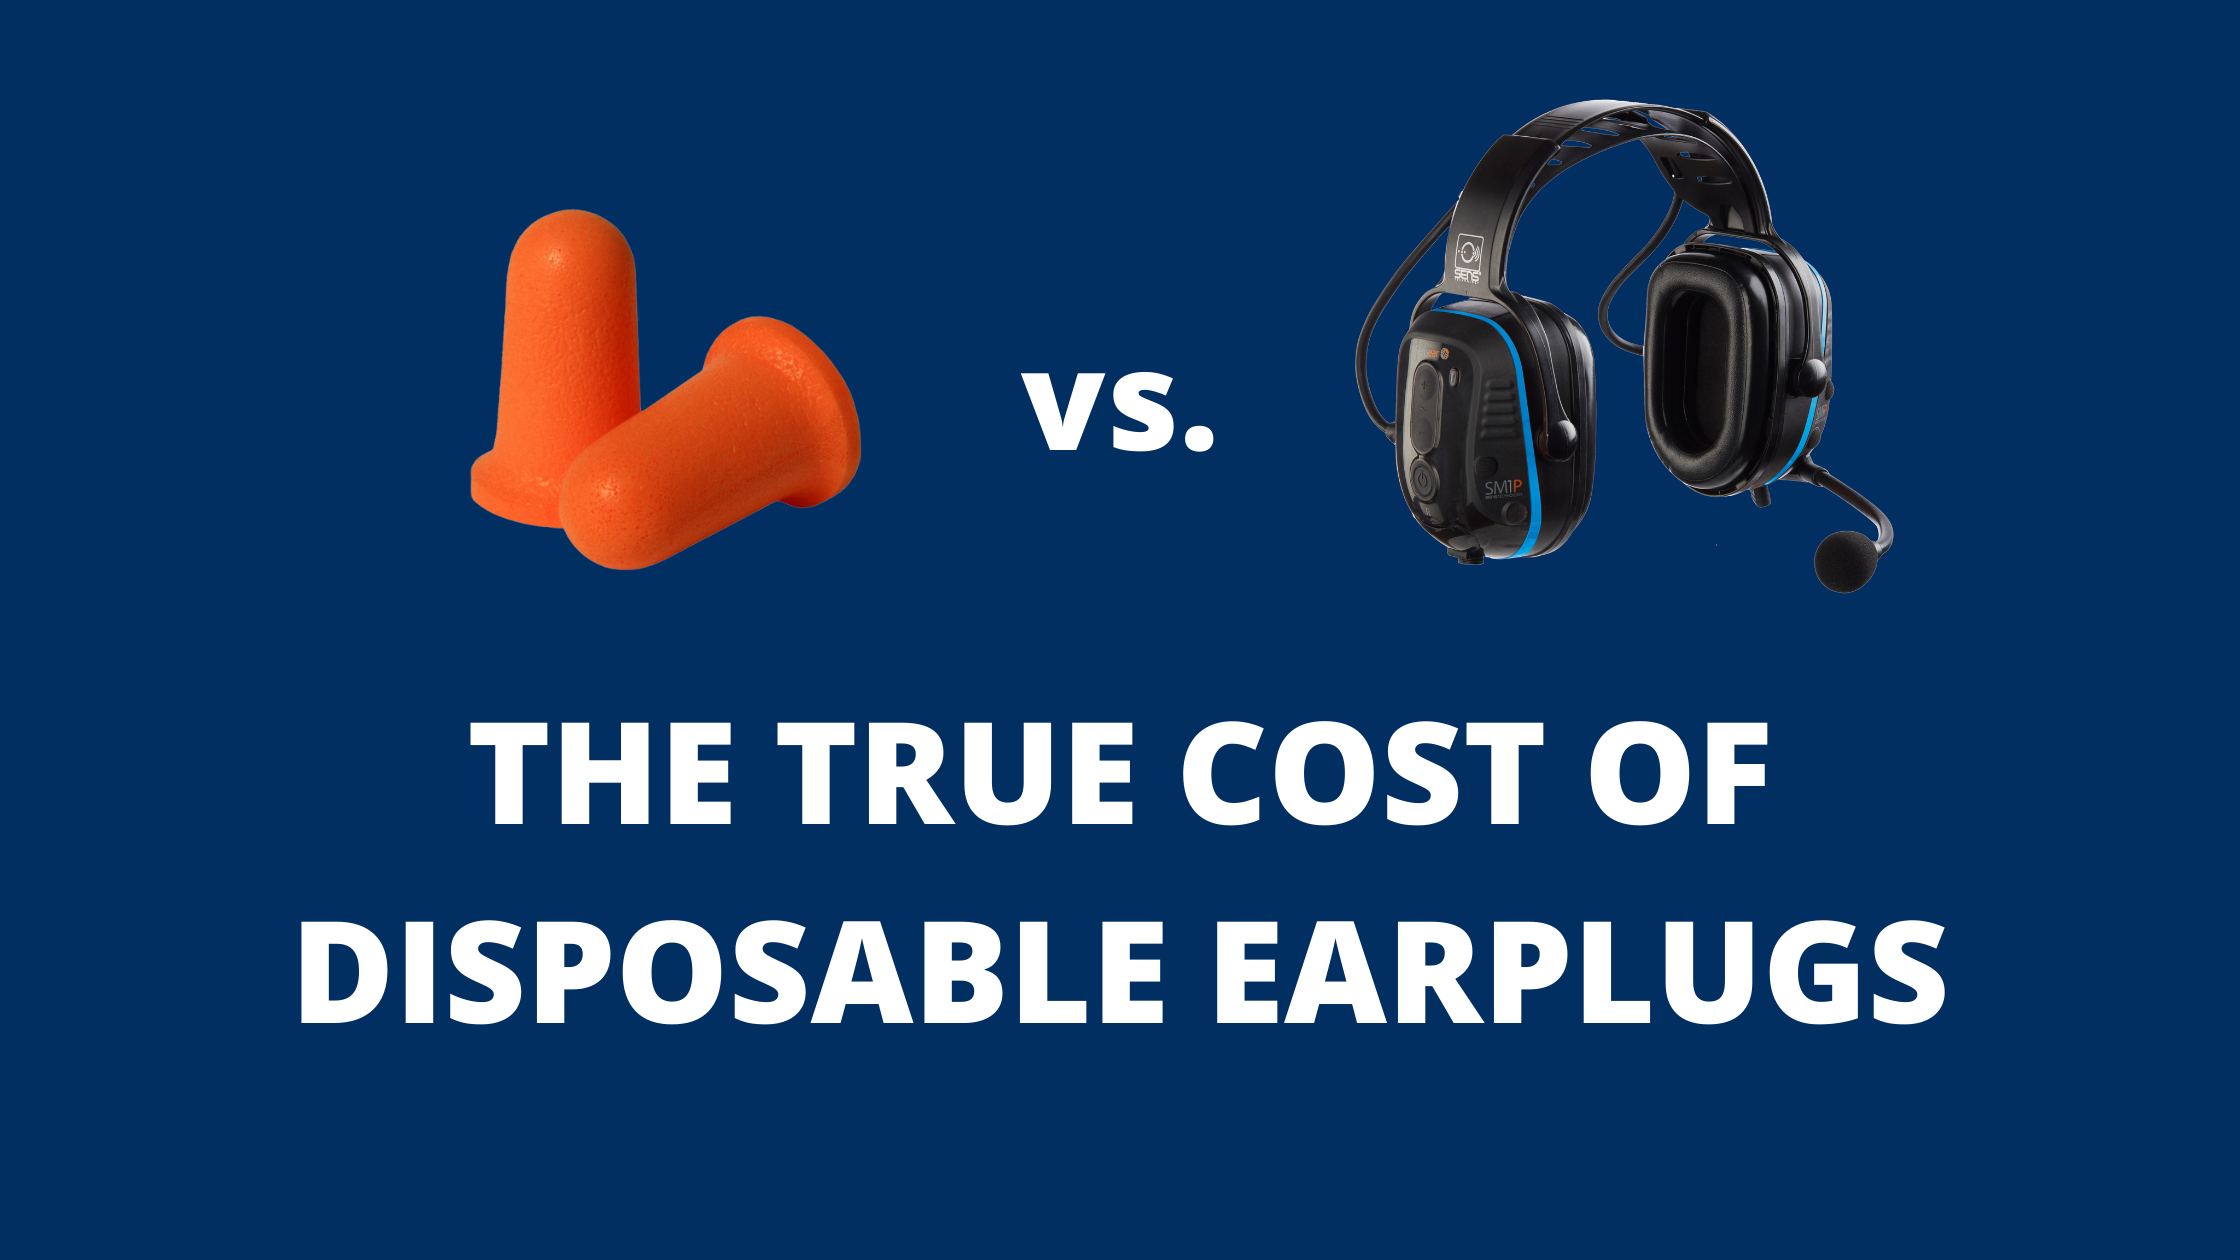 The True Cost of Disposable Earplugs